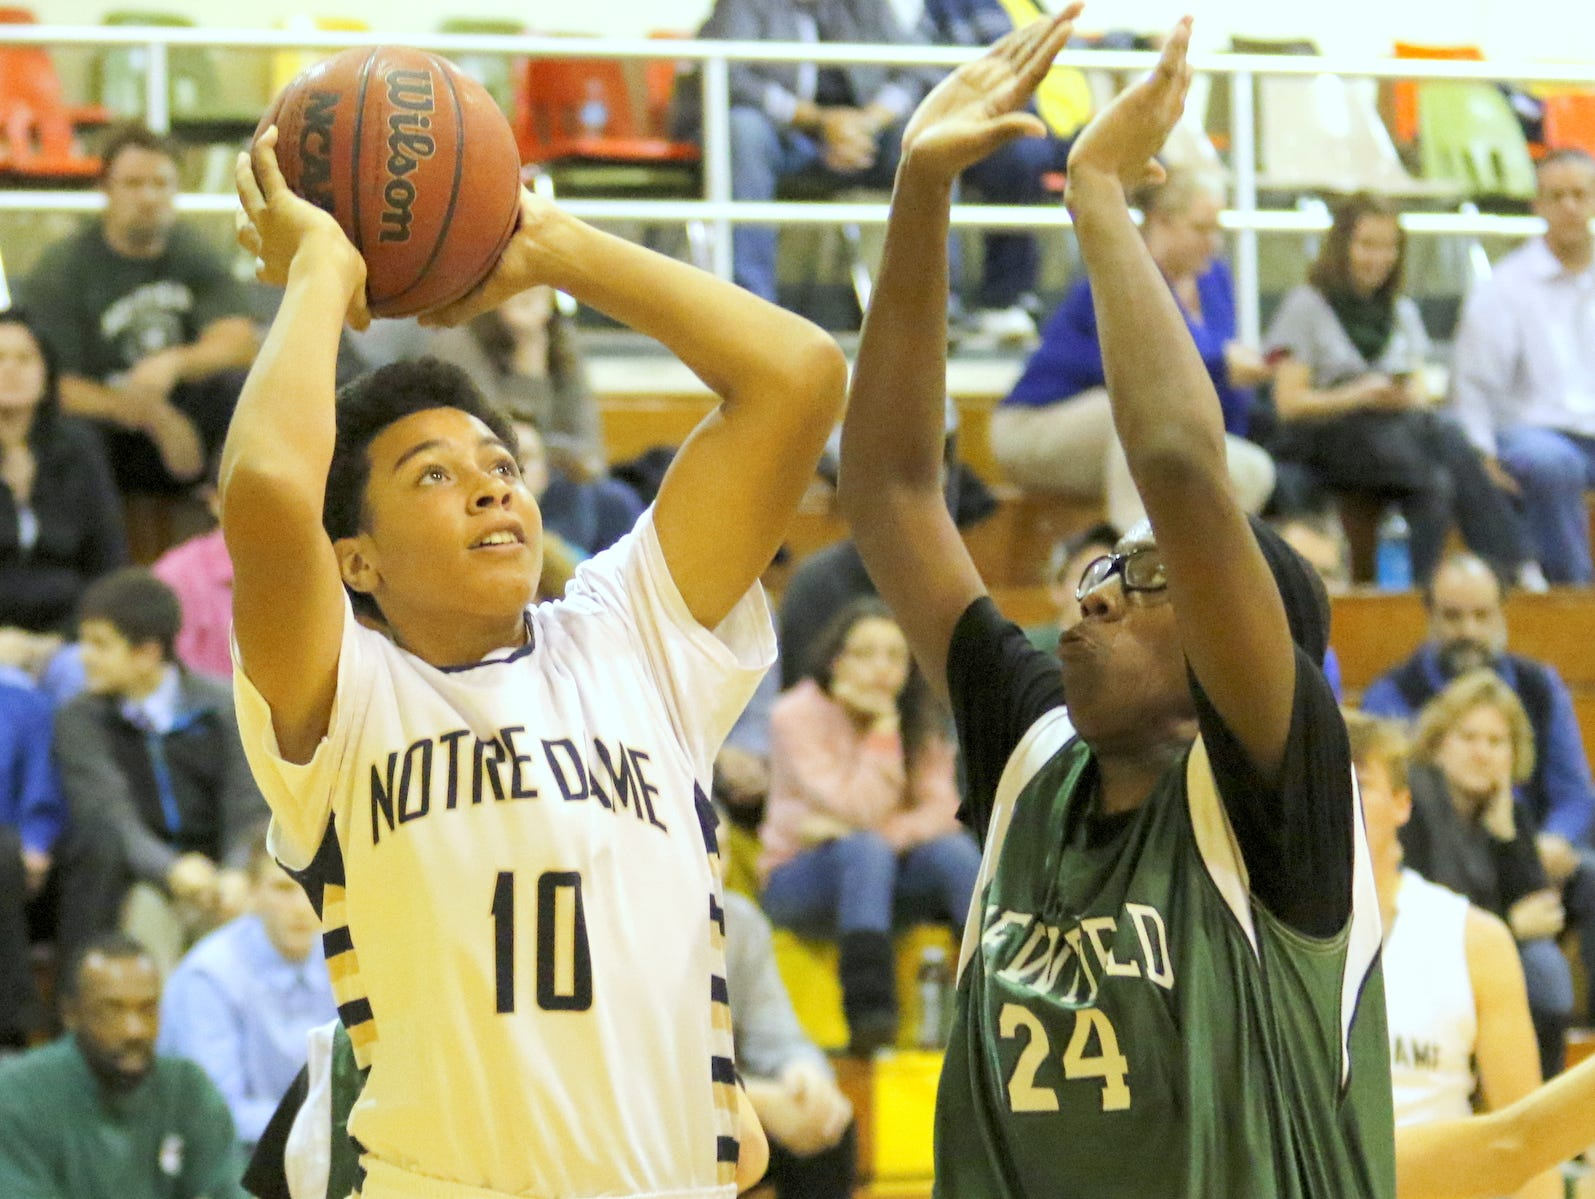 Notre Dame's Derrick Stark looks to shoot while guarded by Newfield's Quintel Clements during Friday's IAC game in Southport.